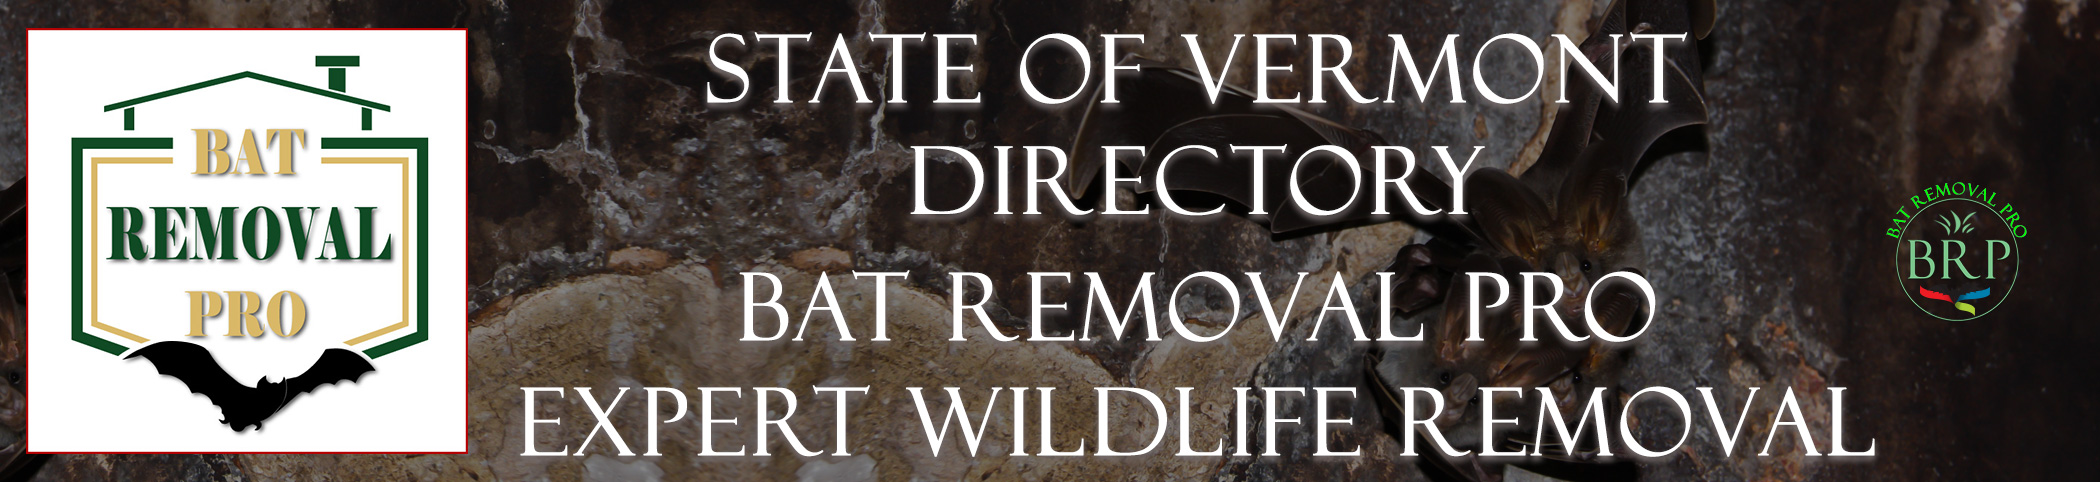 VERMONT HEADER IMAGE AT BAT REMOVAL PRO